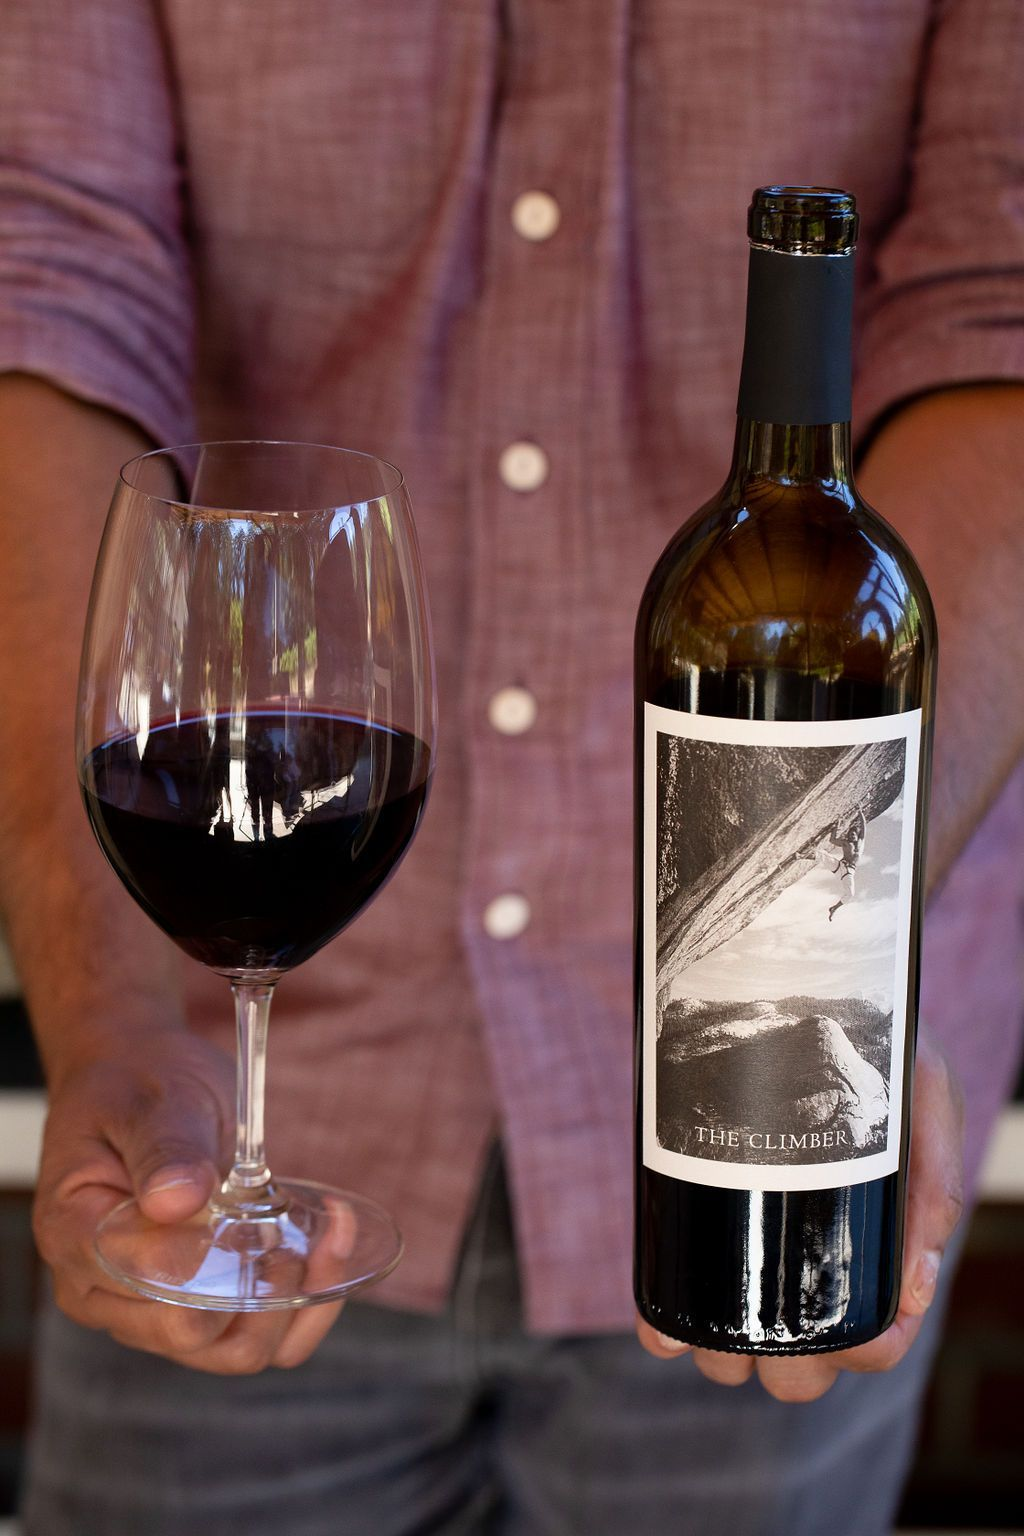 The Perfect Wine To Take On Any Adventure Whether It Be In The Great Outdoors Or In The Kitchen The Climber Is A Crowd Pl Red Blend Wine Red Wine Wine Gifts